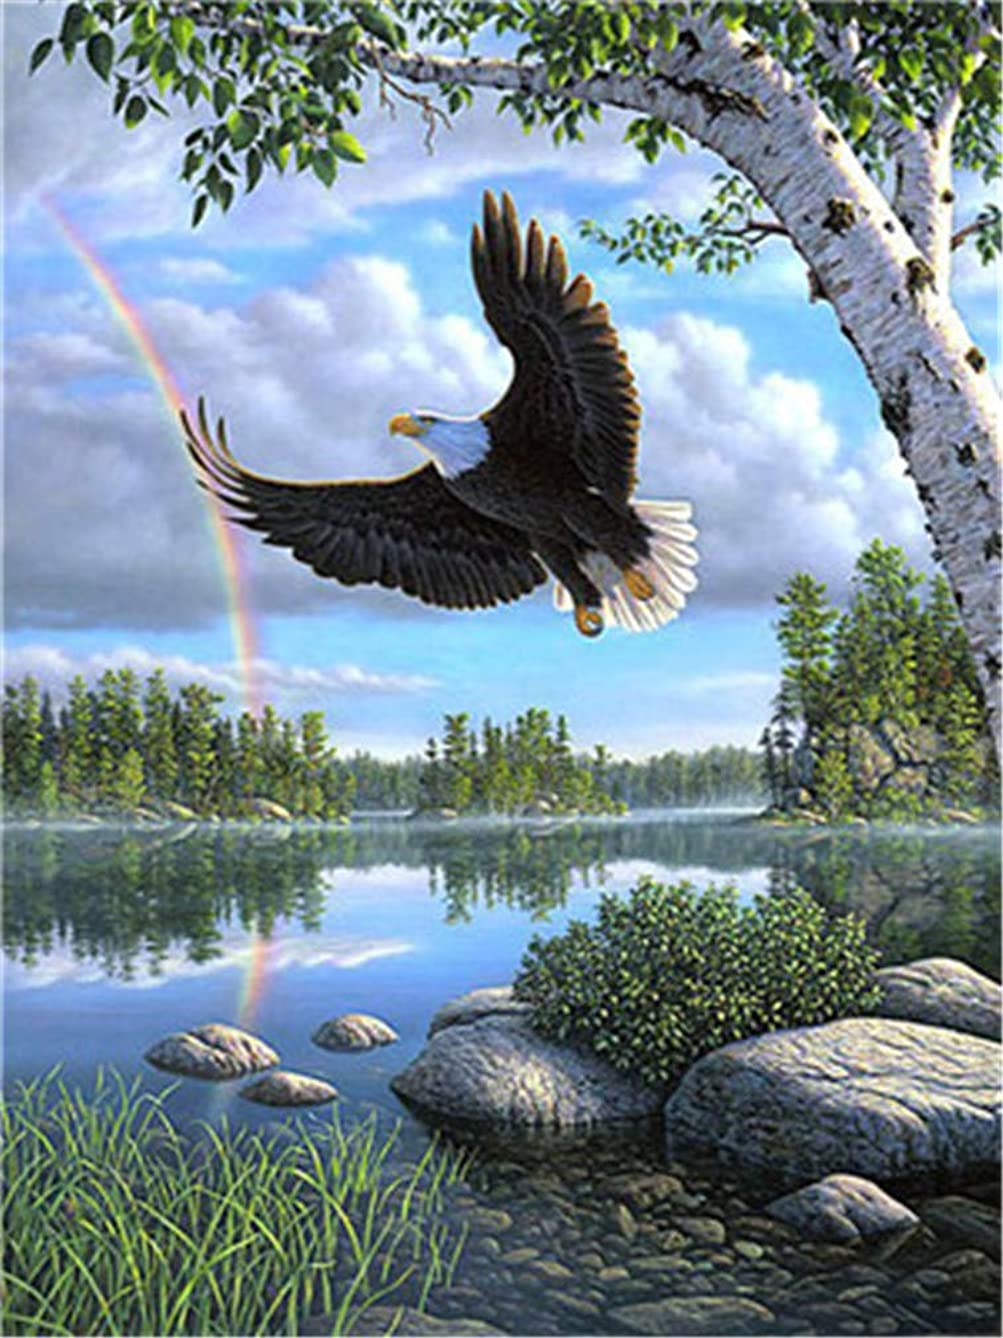 YEESAM ART DIY Paint by Numbers for Adults Beginner Kids, Eagle Rainbow Lake Landscape 16x20 inch Linen Canvas Acrylic Stress Less Number Painting Gifts (Eagle, Without Frame)